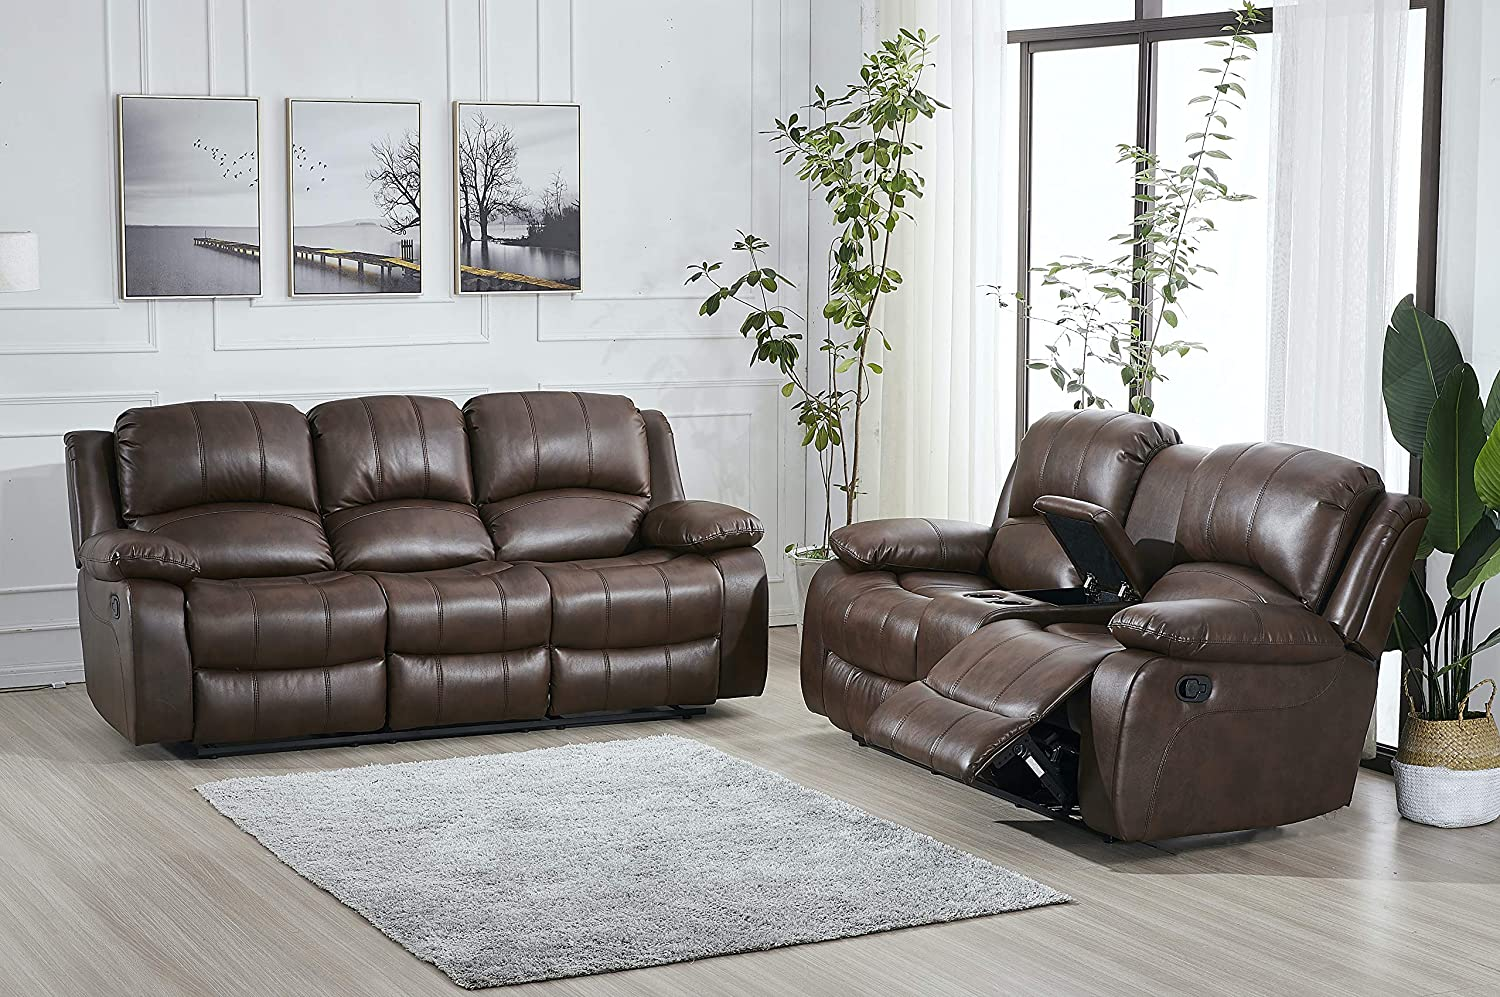 Amazon.com: Betsy Furniture Bonded Leather Recliner Set Living